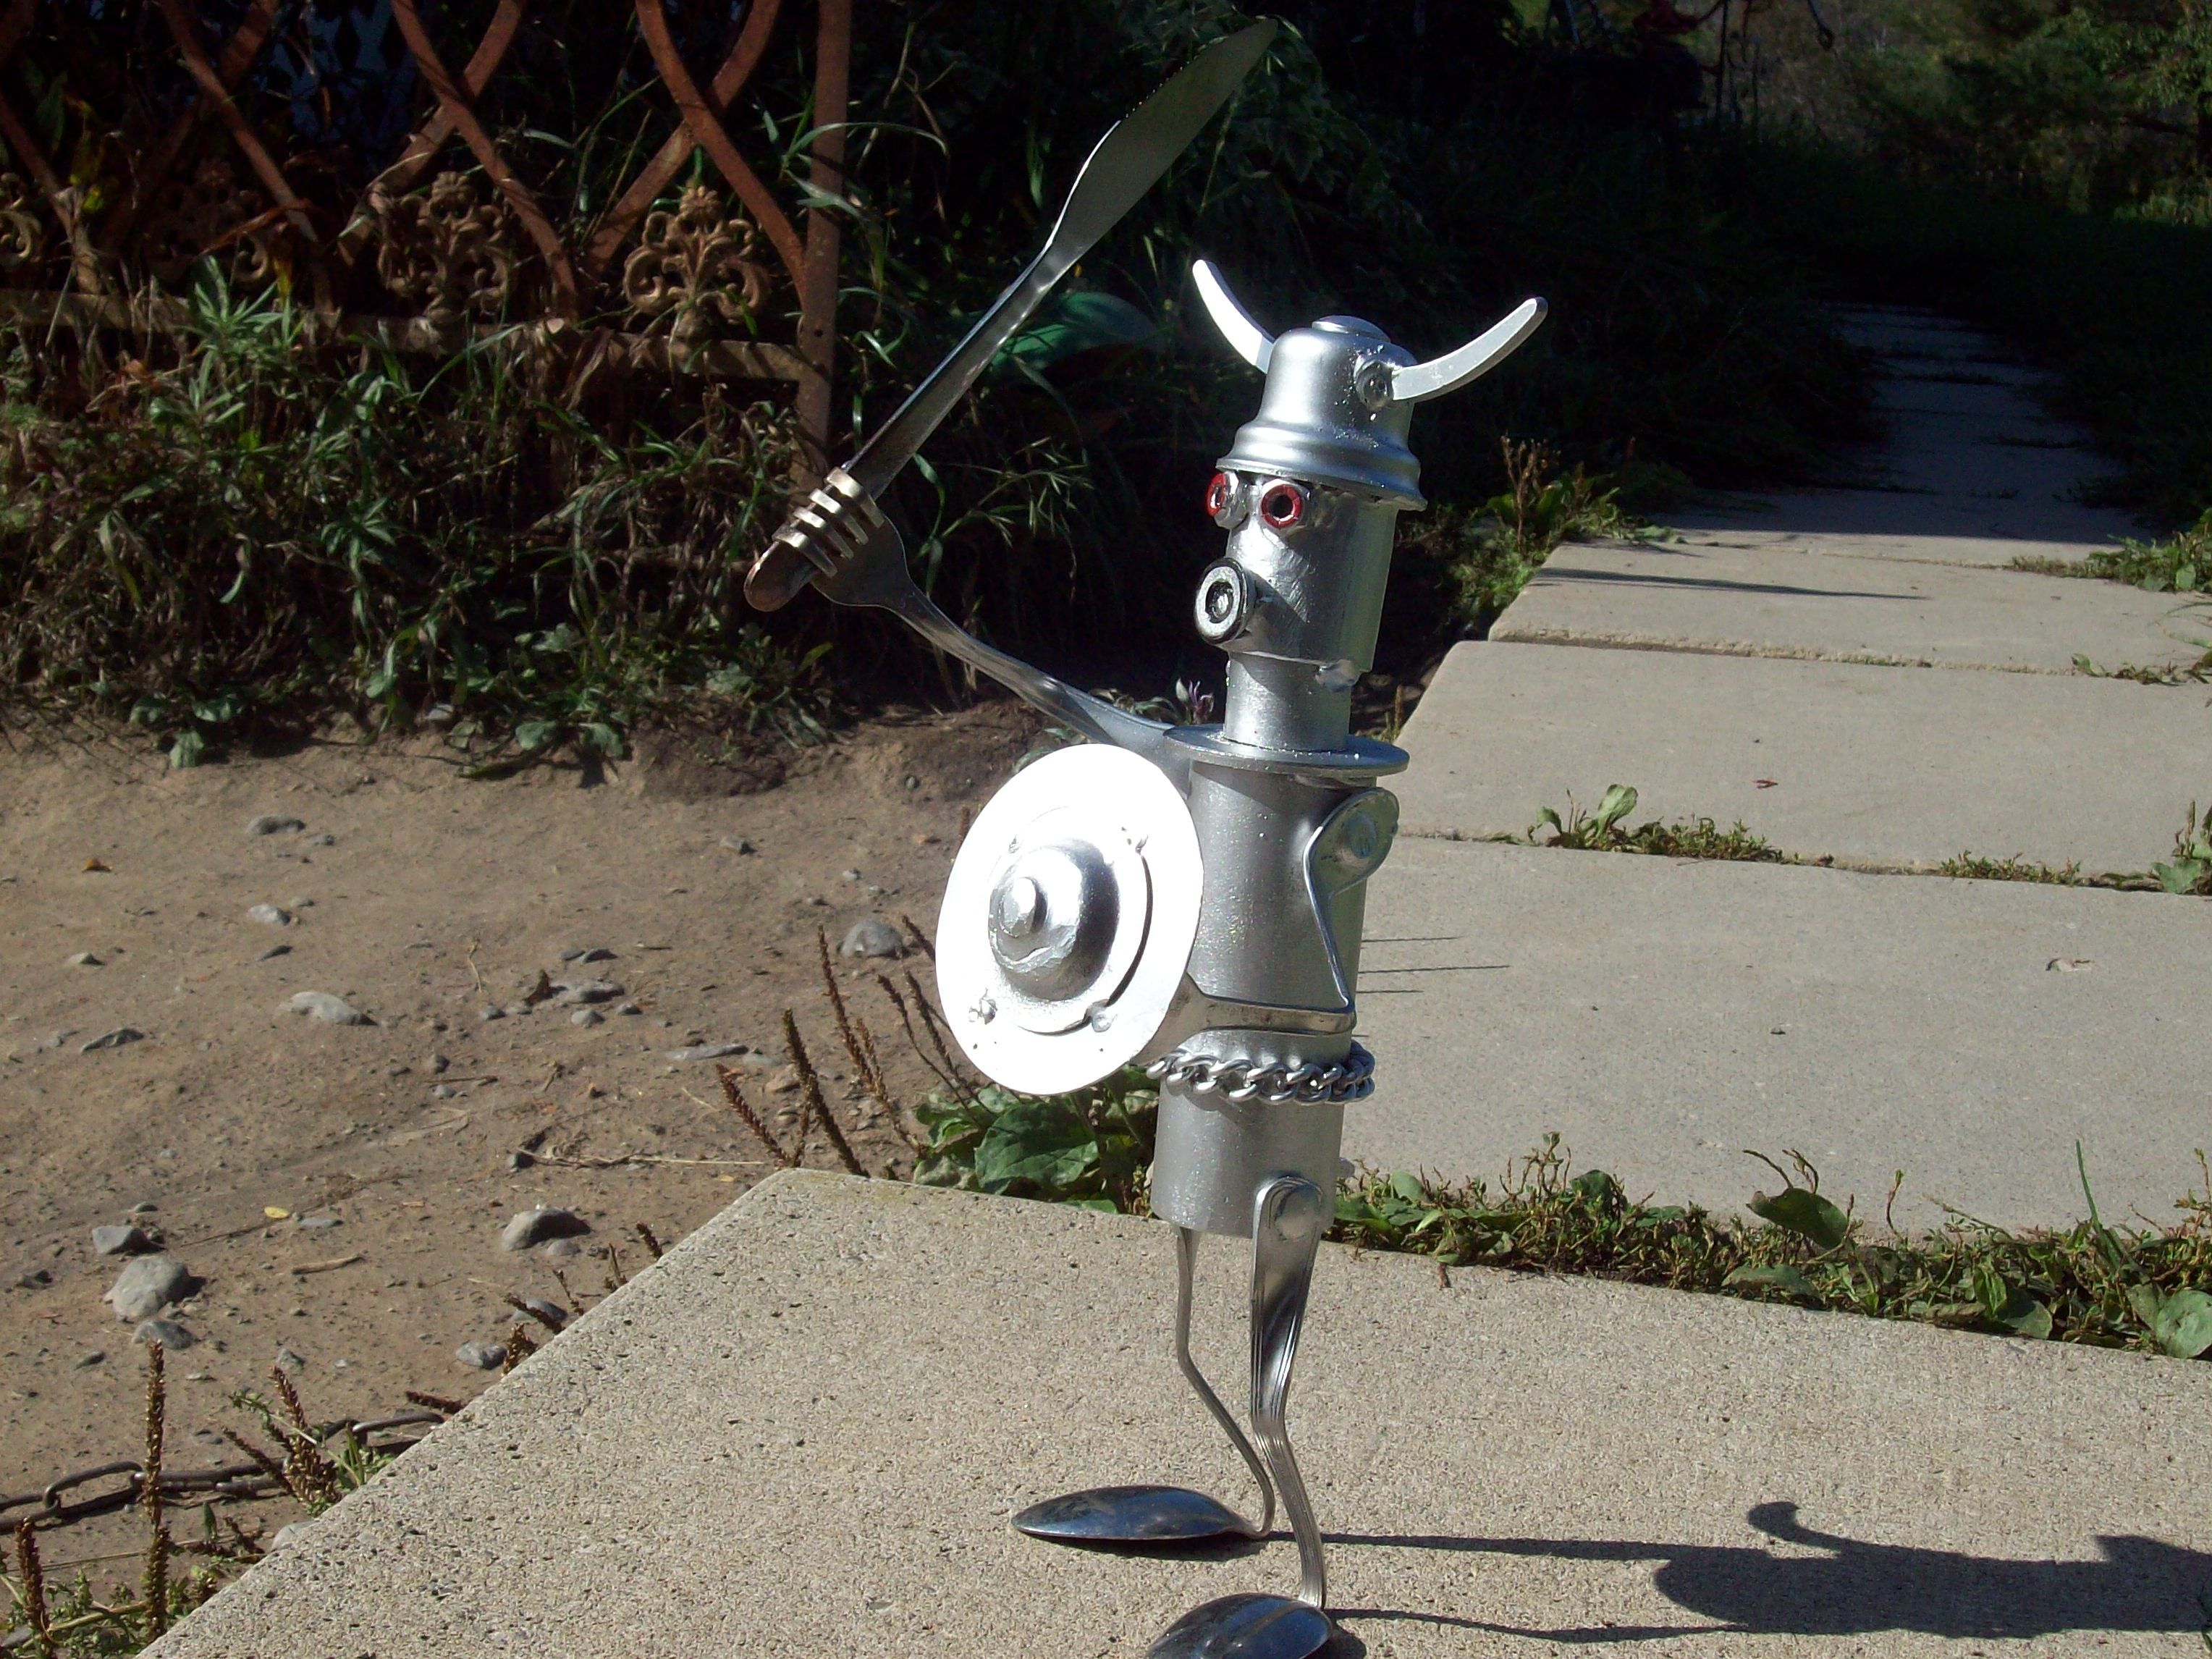 Small Iron Viking! Created by J.R.Hamm. Made out of recycled scrap metal and painted silver with red eyes.